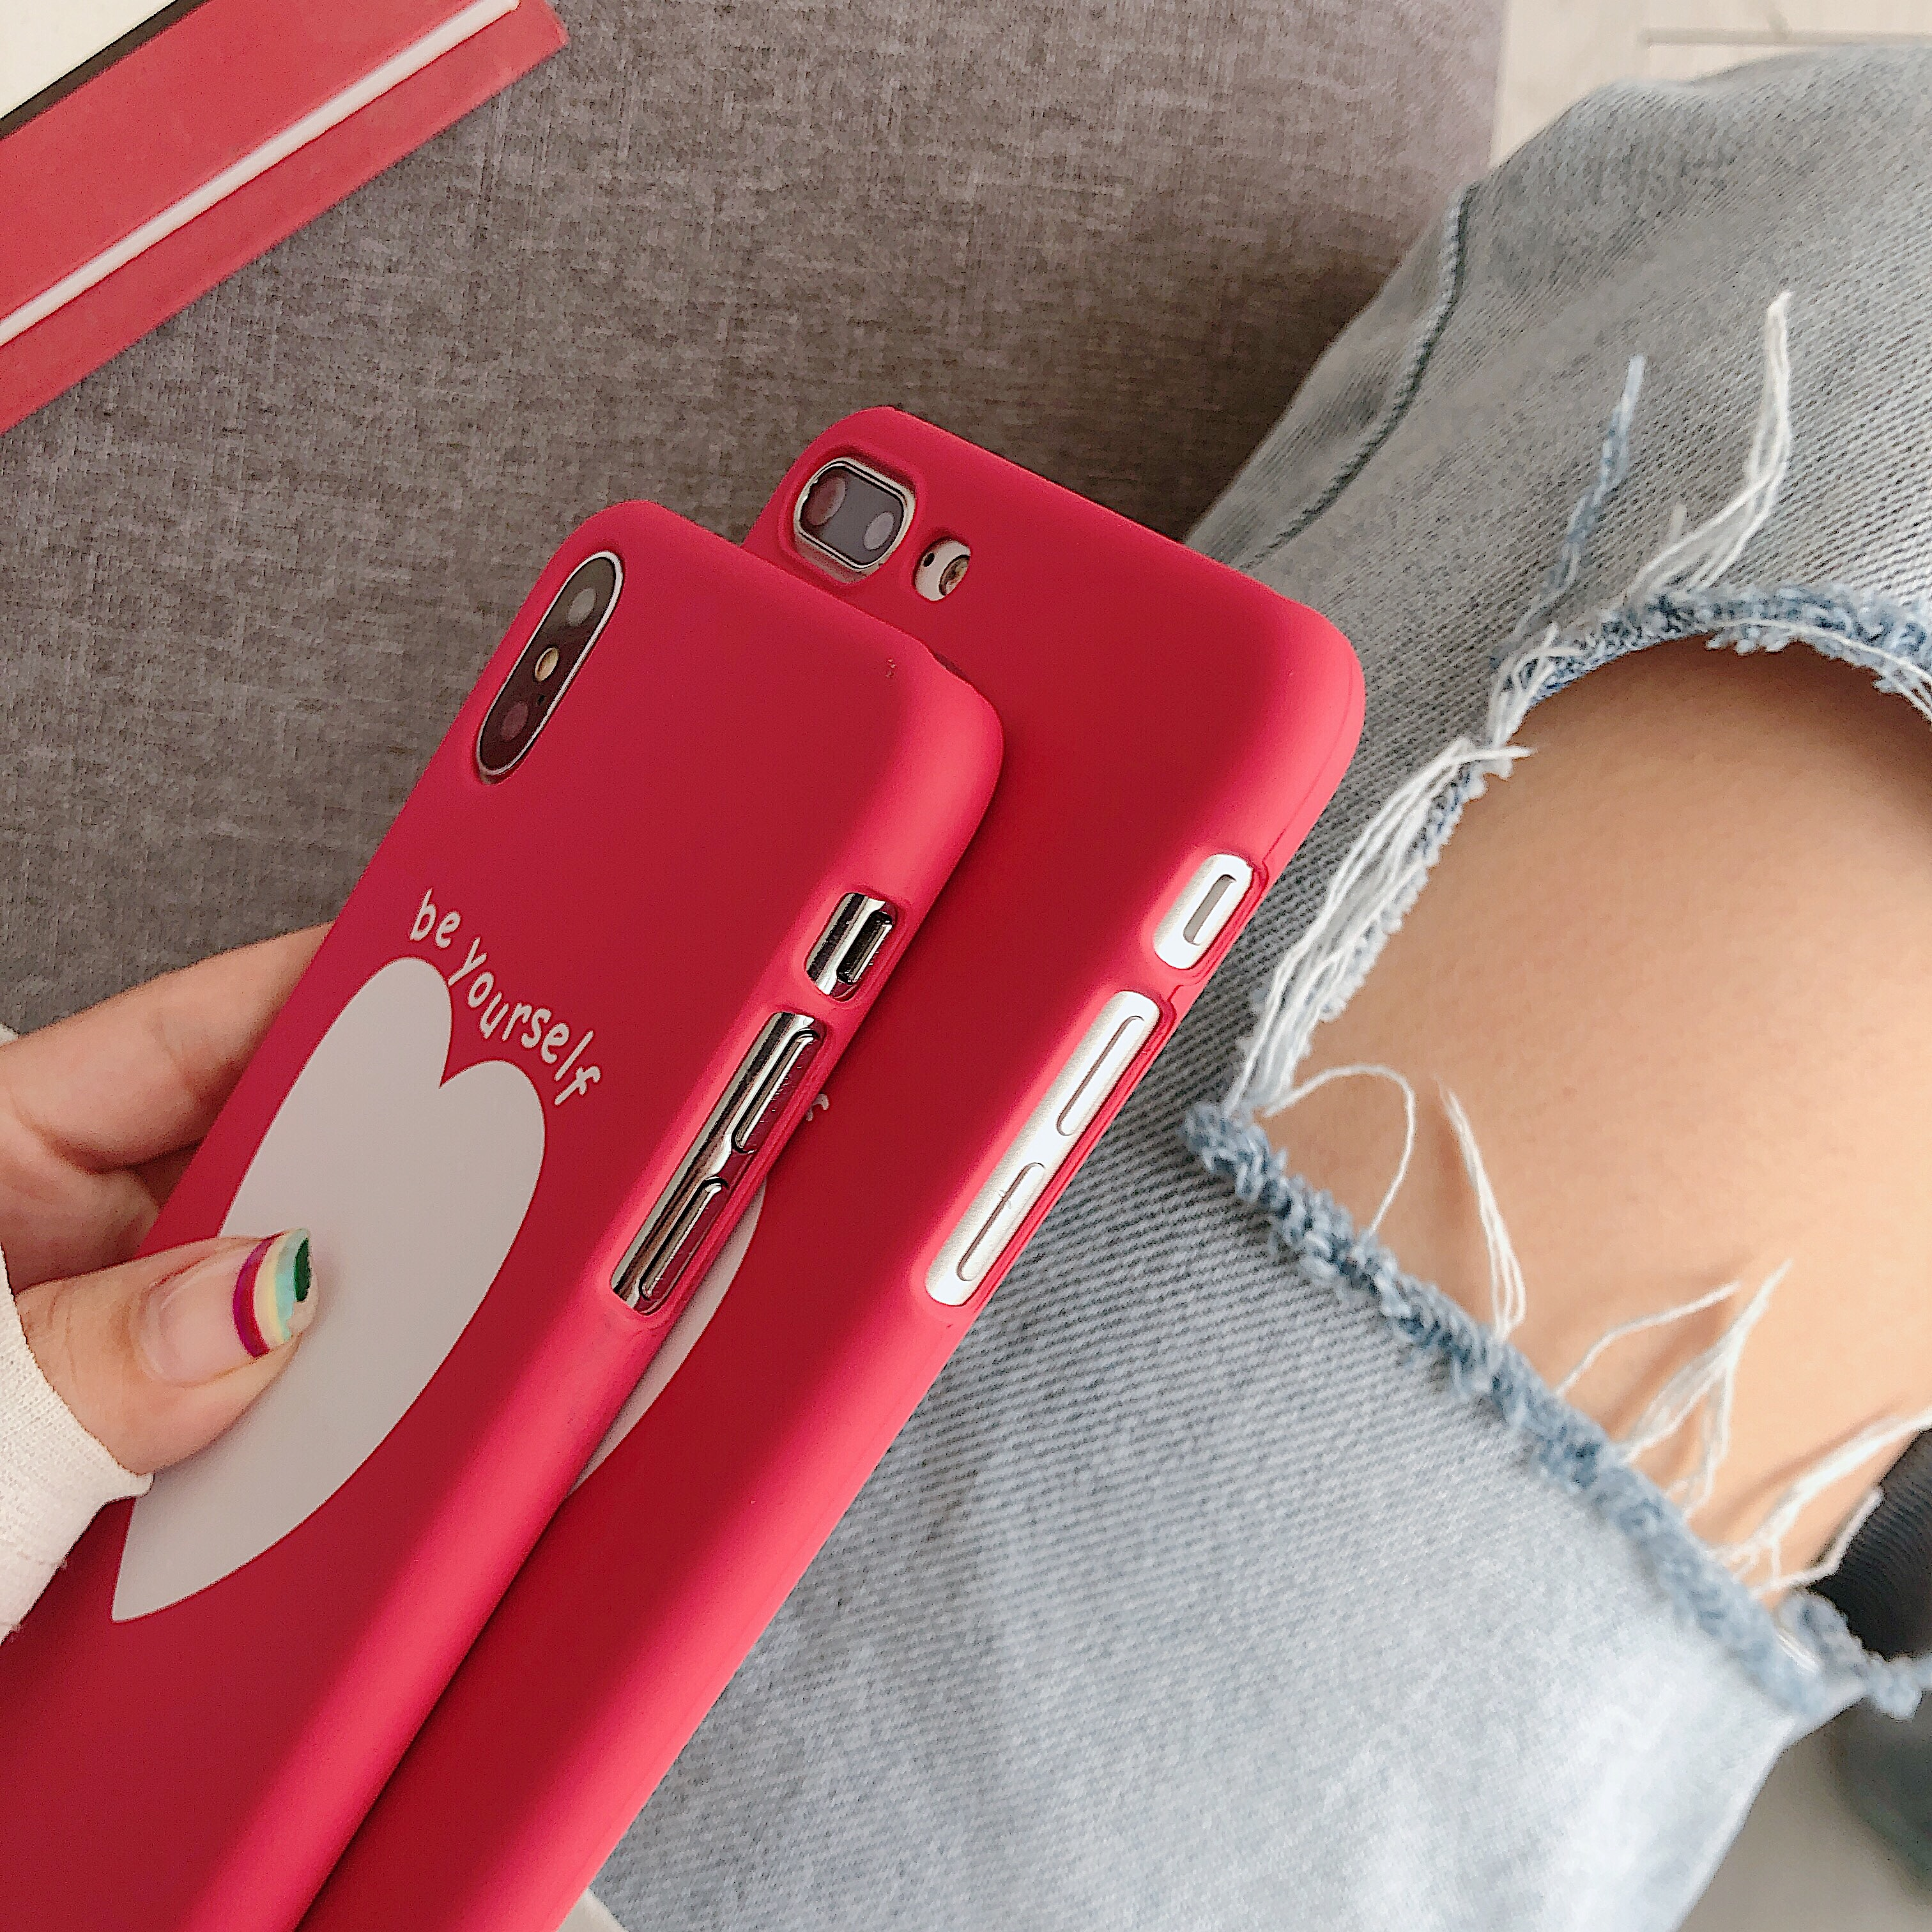 Image 4 - Phone Bag Case Accessories For iPhone X XR XS MAX 6 6s 7 8Plus Luxury Couple Love Heart Eyes Print Fashion Back Cover Capa Coque-in Half-wrapped Cases from Cellphones & Telecommunications